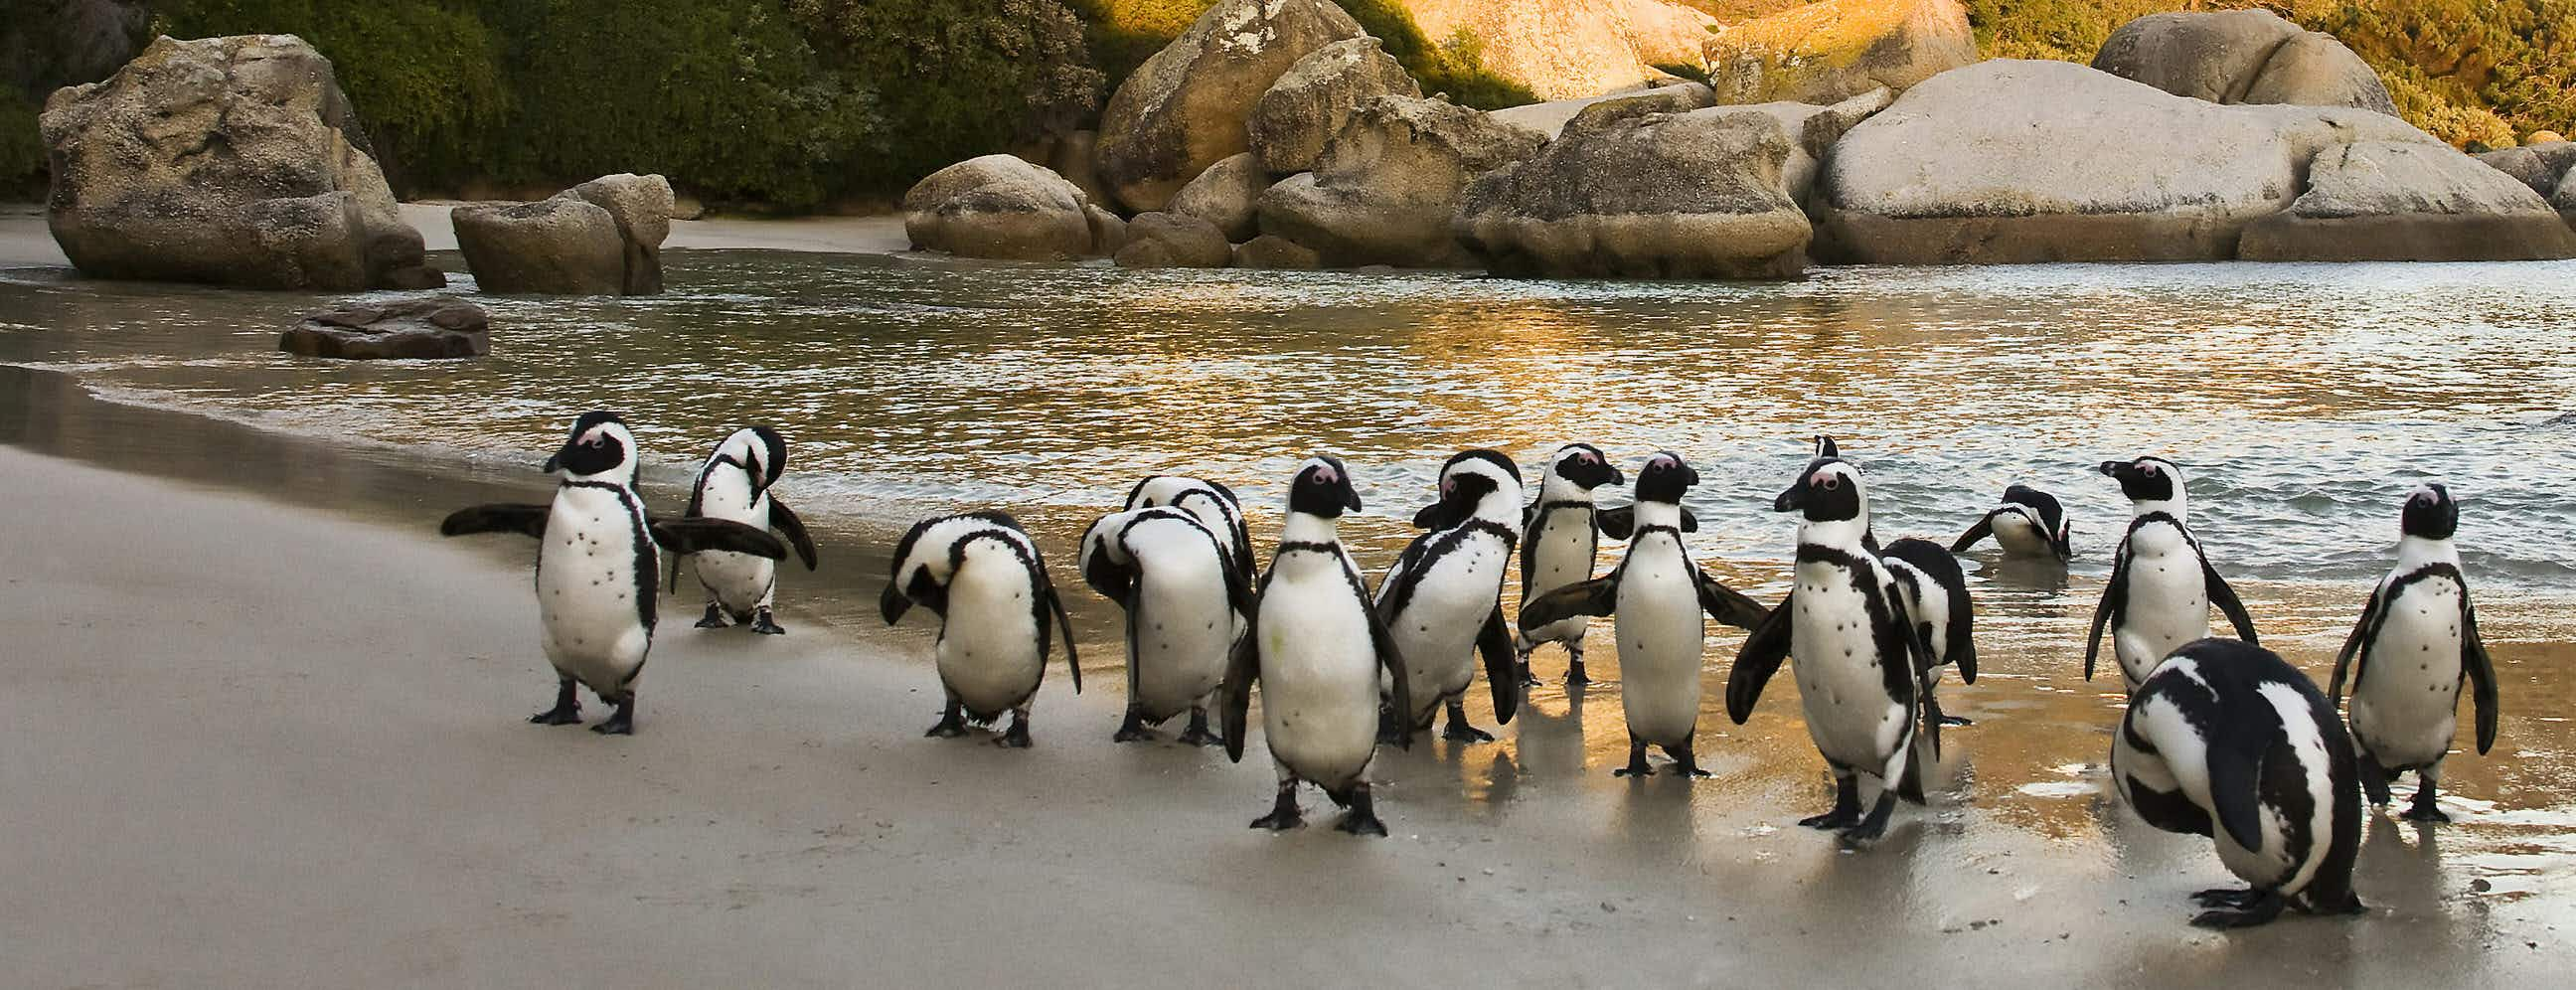 Boulder's Beach colony numbers 3000 and is the ideal place to see the African penguin © Andrea Willmore / Shutterstock